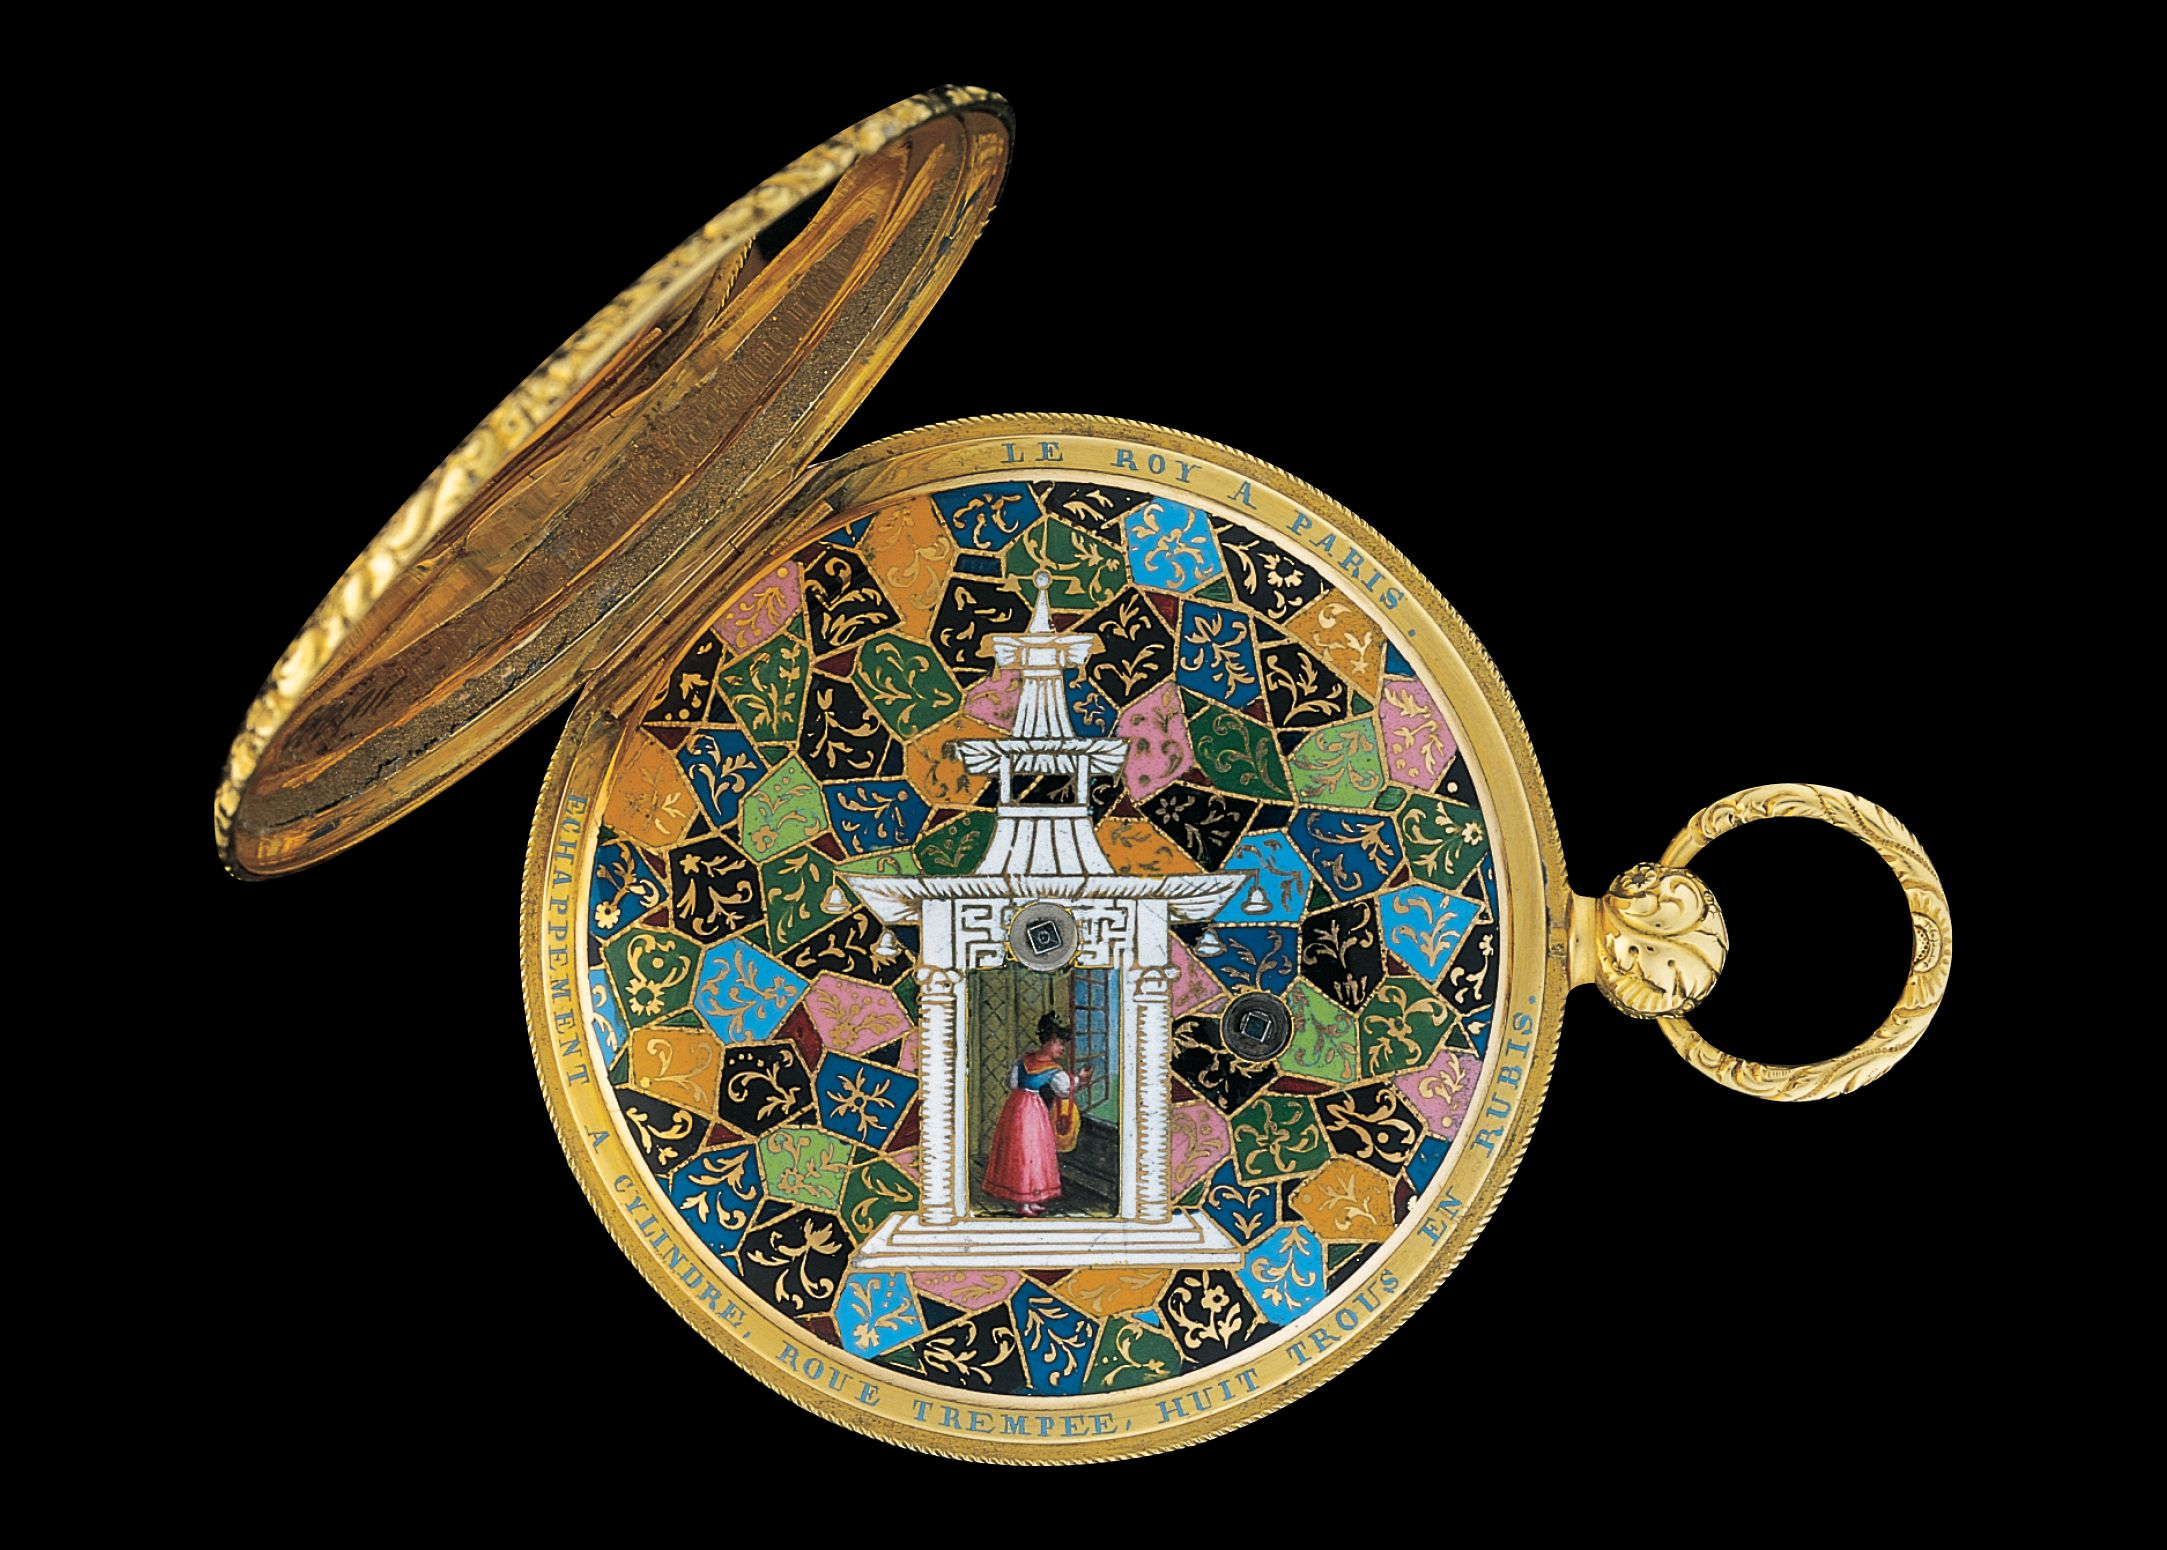 Explore the luxurious timepieces in the jewels of time